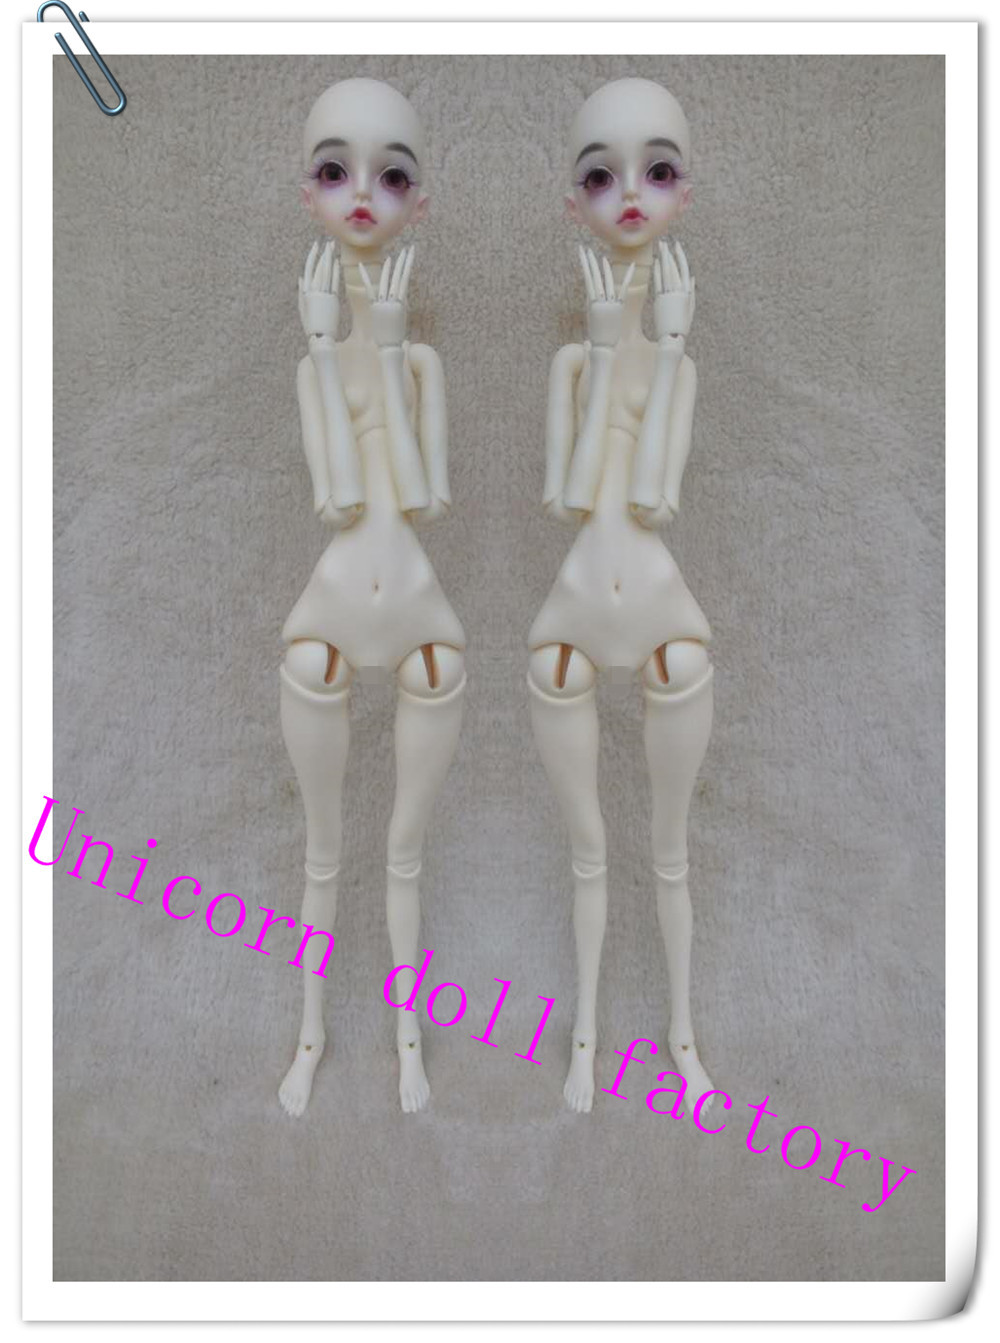 Dc 1/4 BJD/SD dolls 4 girl swan eyes for free uncle 1 3 1 4 1 6 doll accessories for bjd sd bjd eyelashes for doll 1 pair tx 03